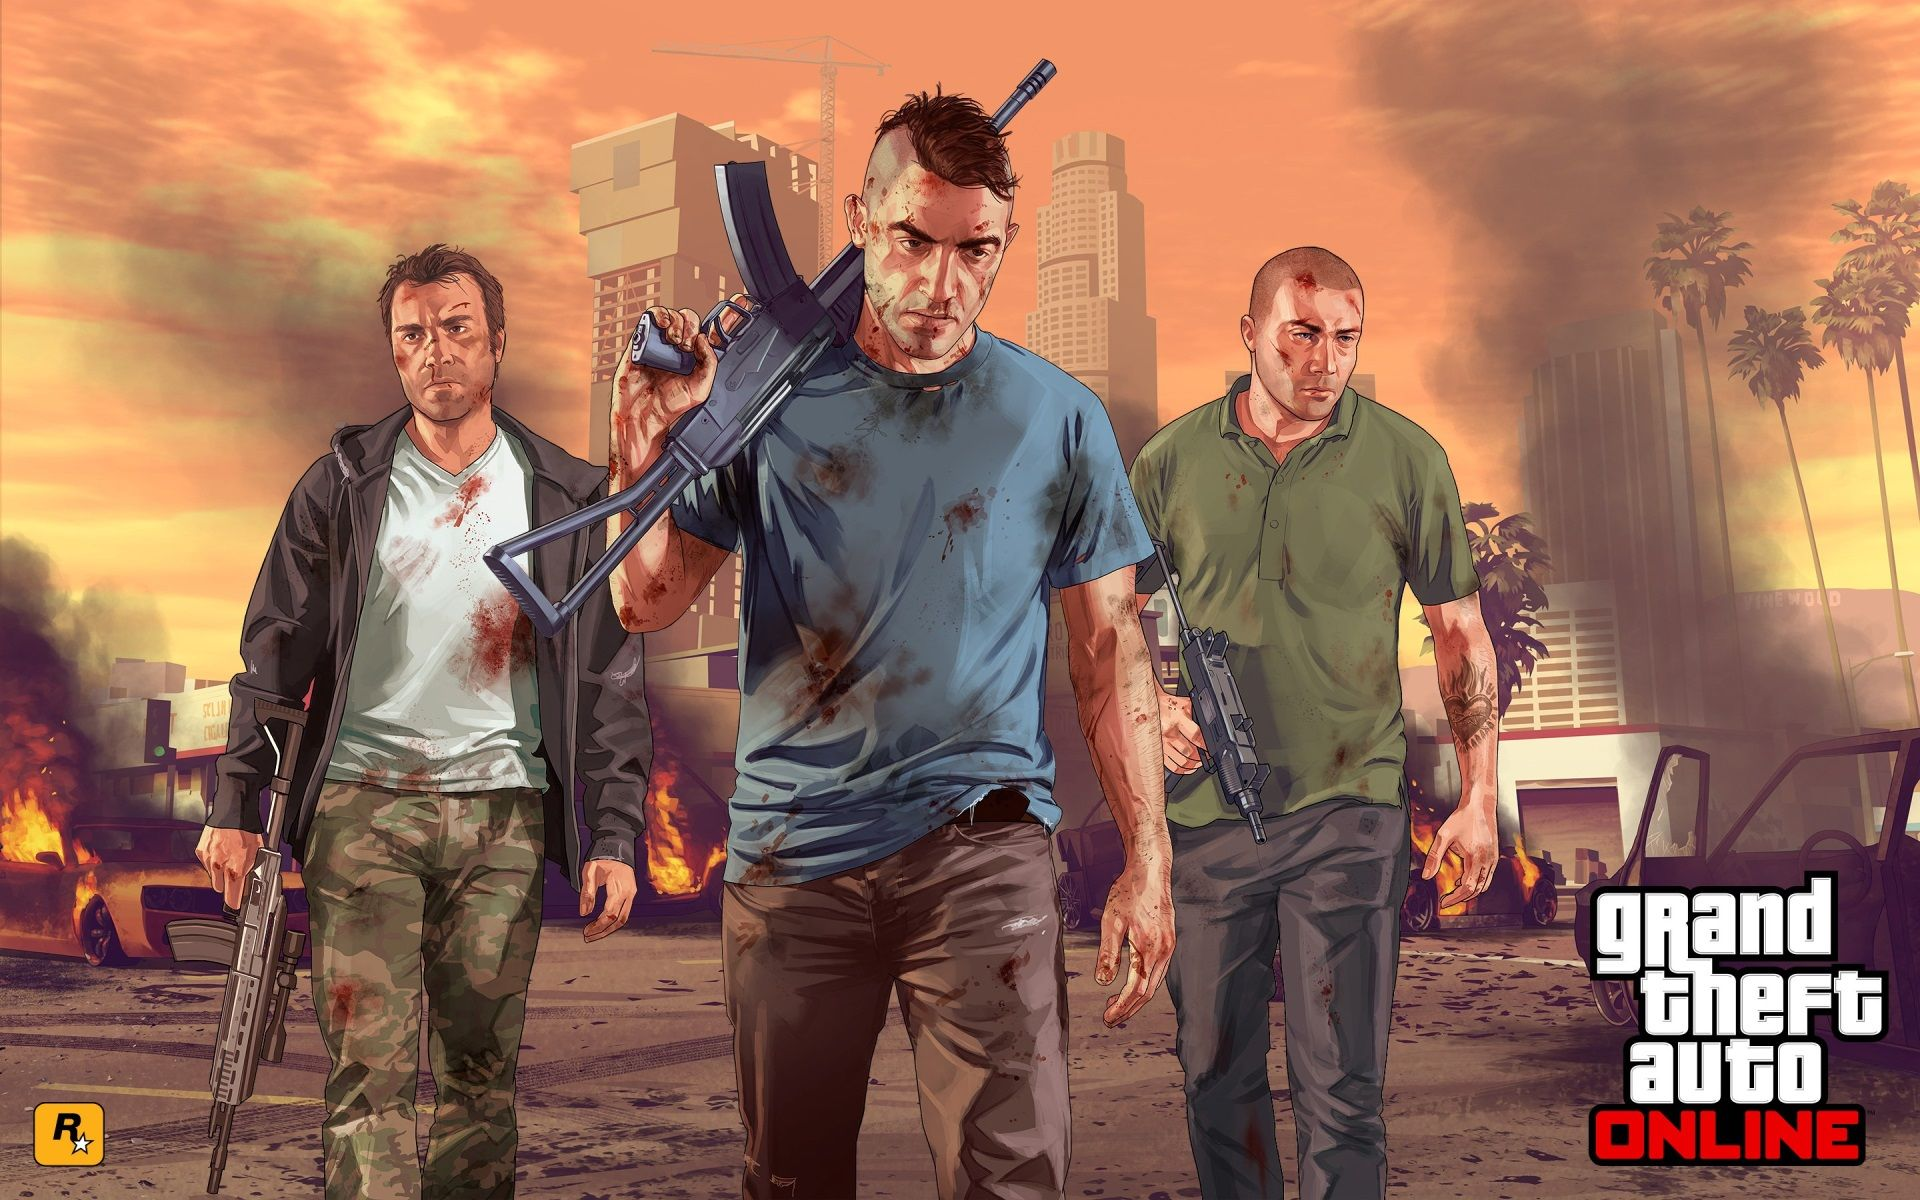 1920x1200 Gta 5 Backgrounds Free Download Grand Theft Auto Gta Online Grand Theft Auto Games